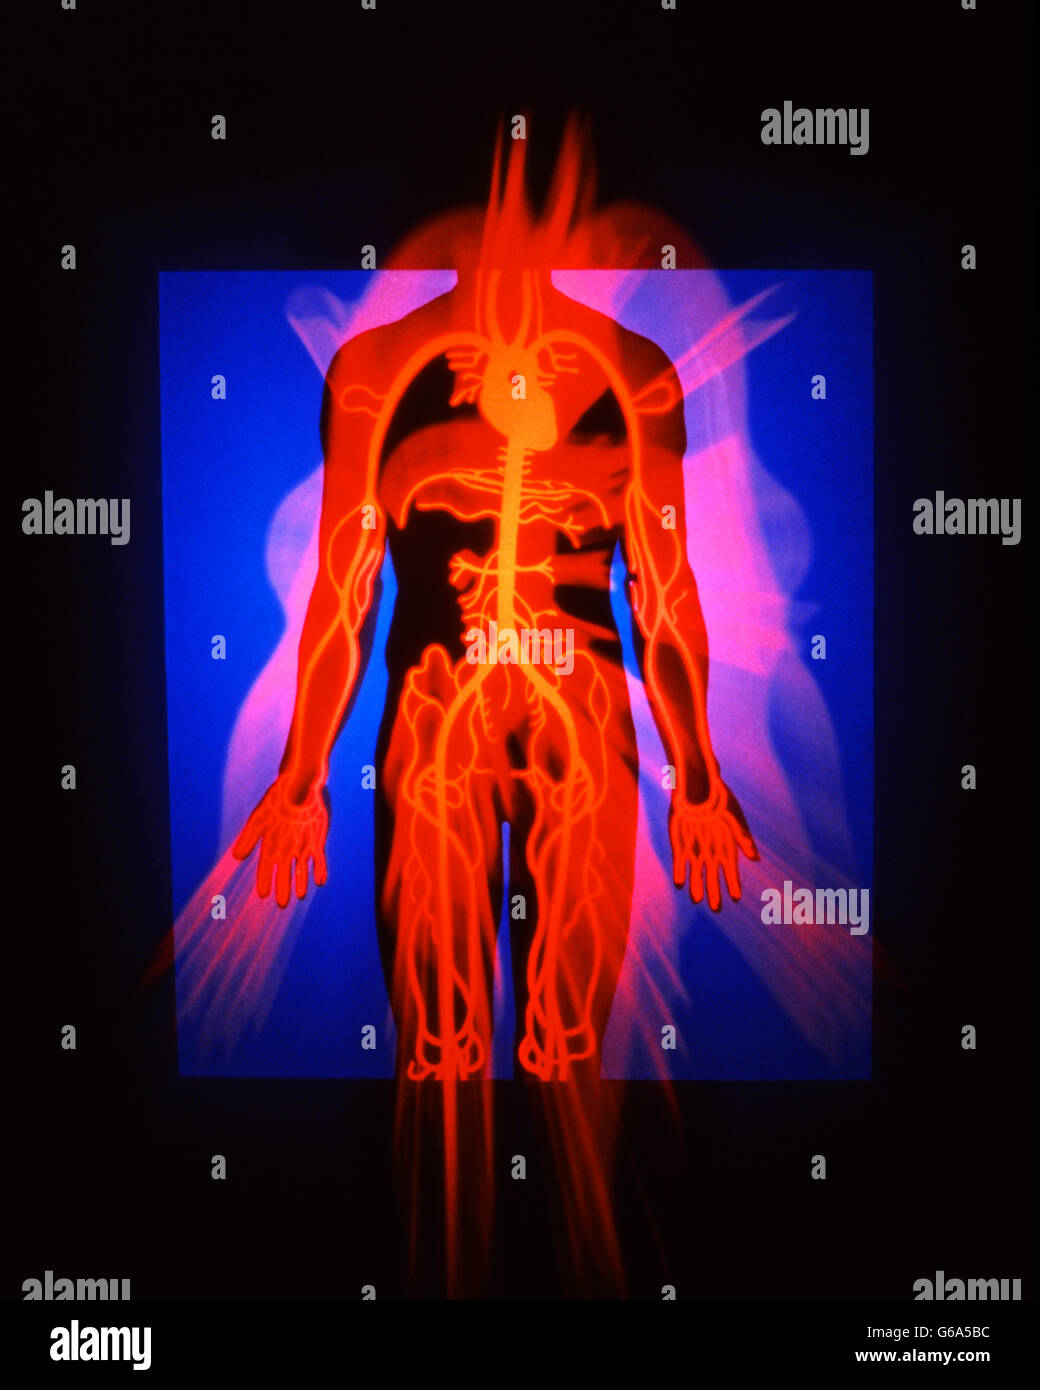 MEDICAL COMPUTER ILLUSTRATION OF HUMAN BODY SHOWING HEART VEINS AND ARTERIES - Stock Image